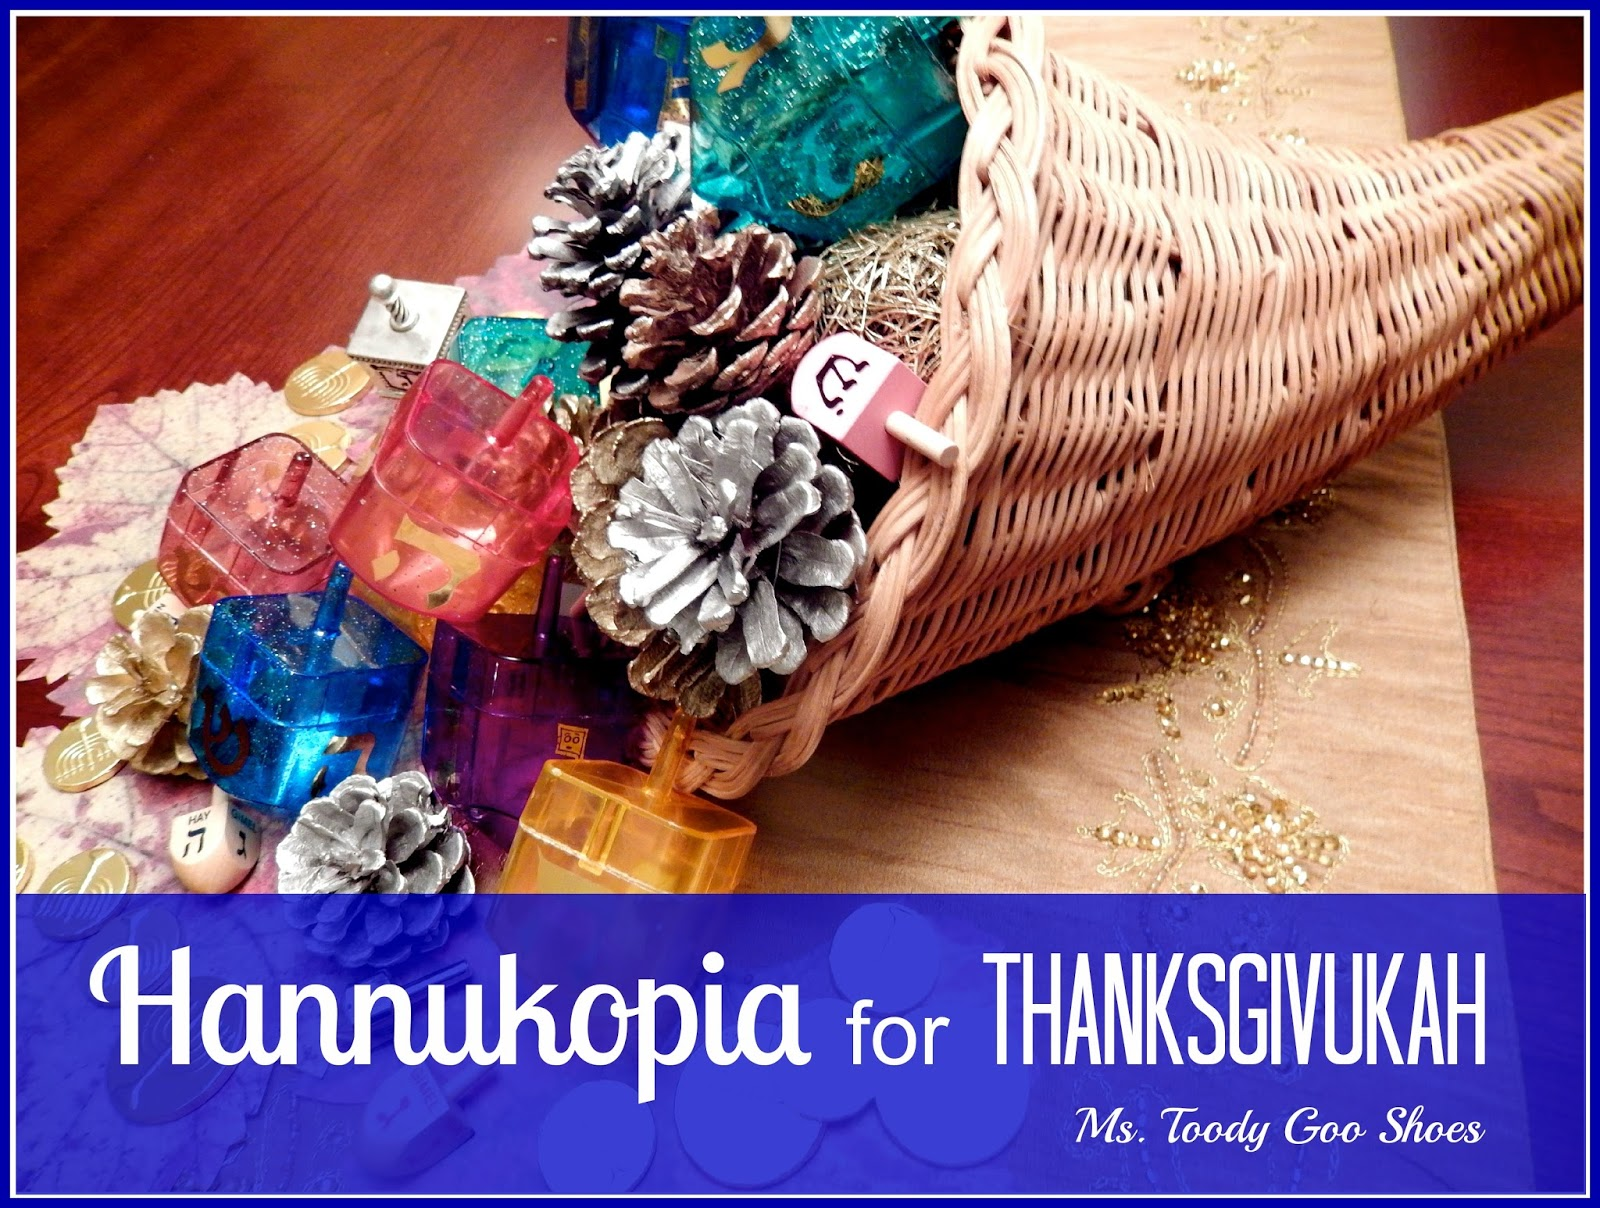 The Hannukopia - A Thanksgivukah Centerpiece  by Ms. Toody Goo Shoes